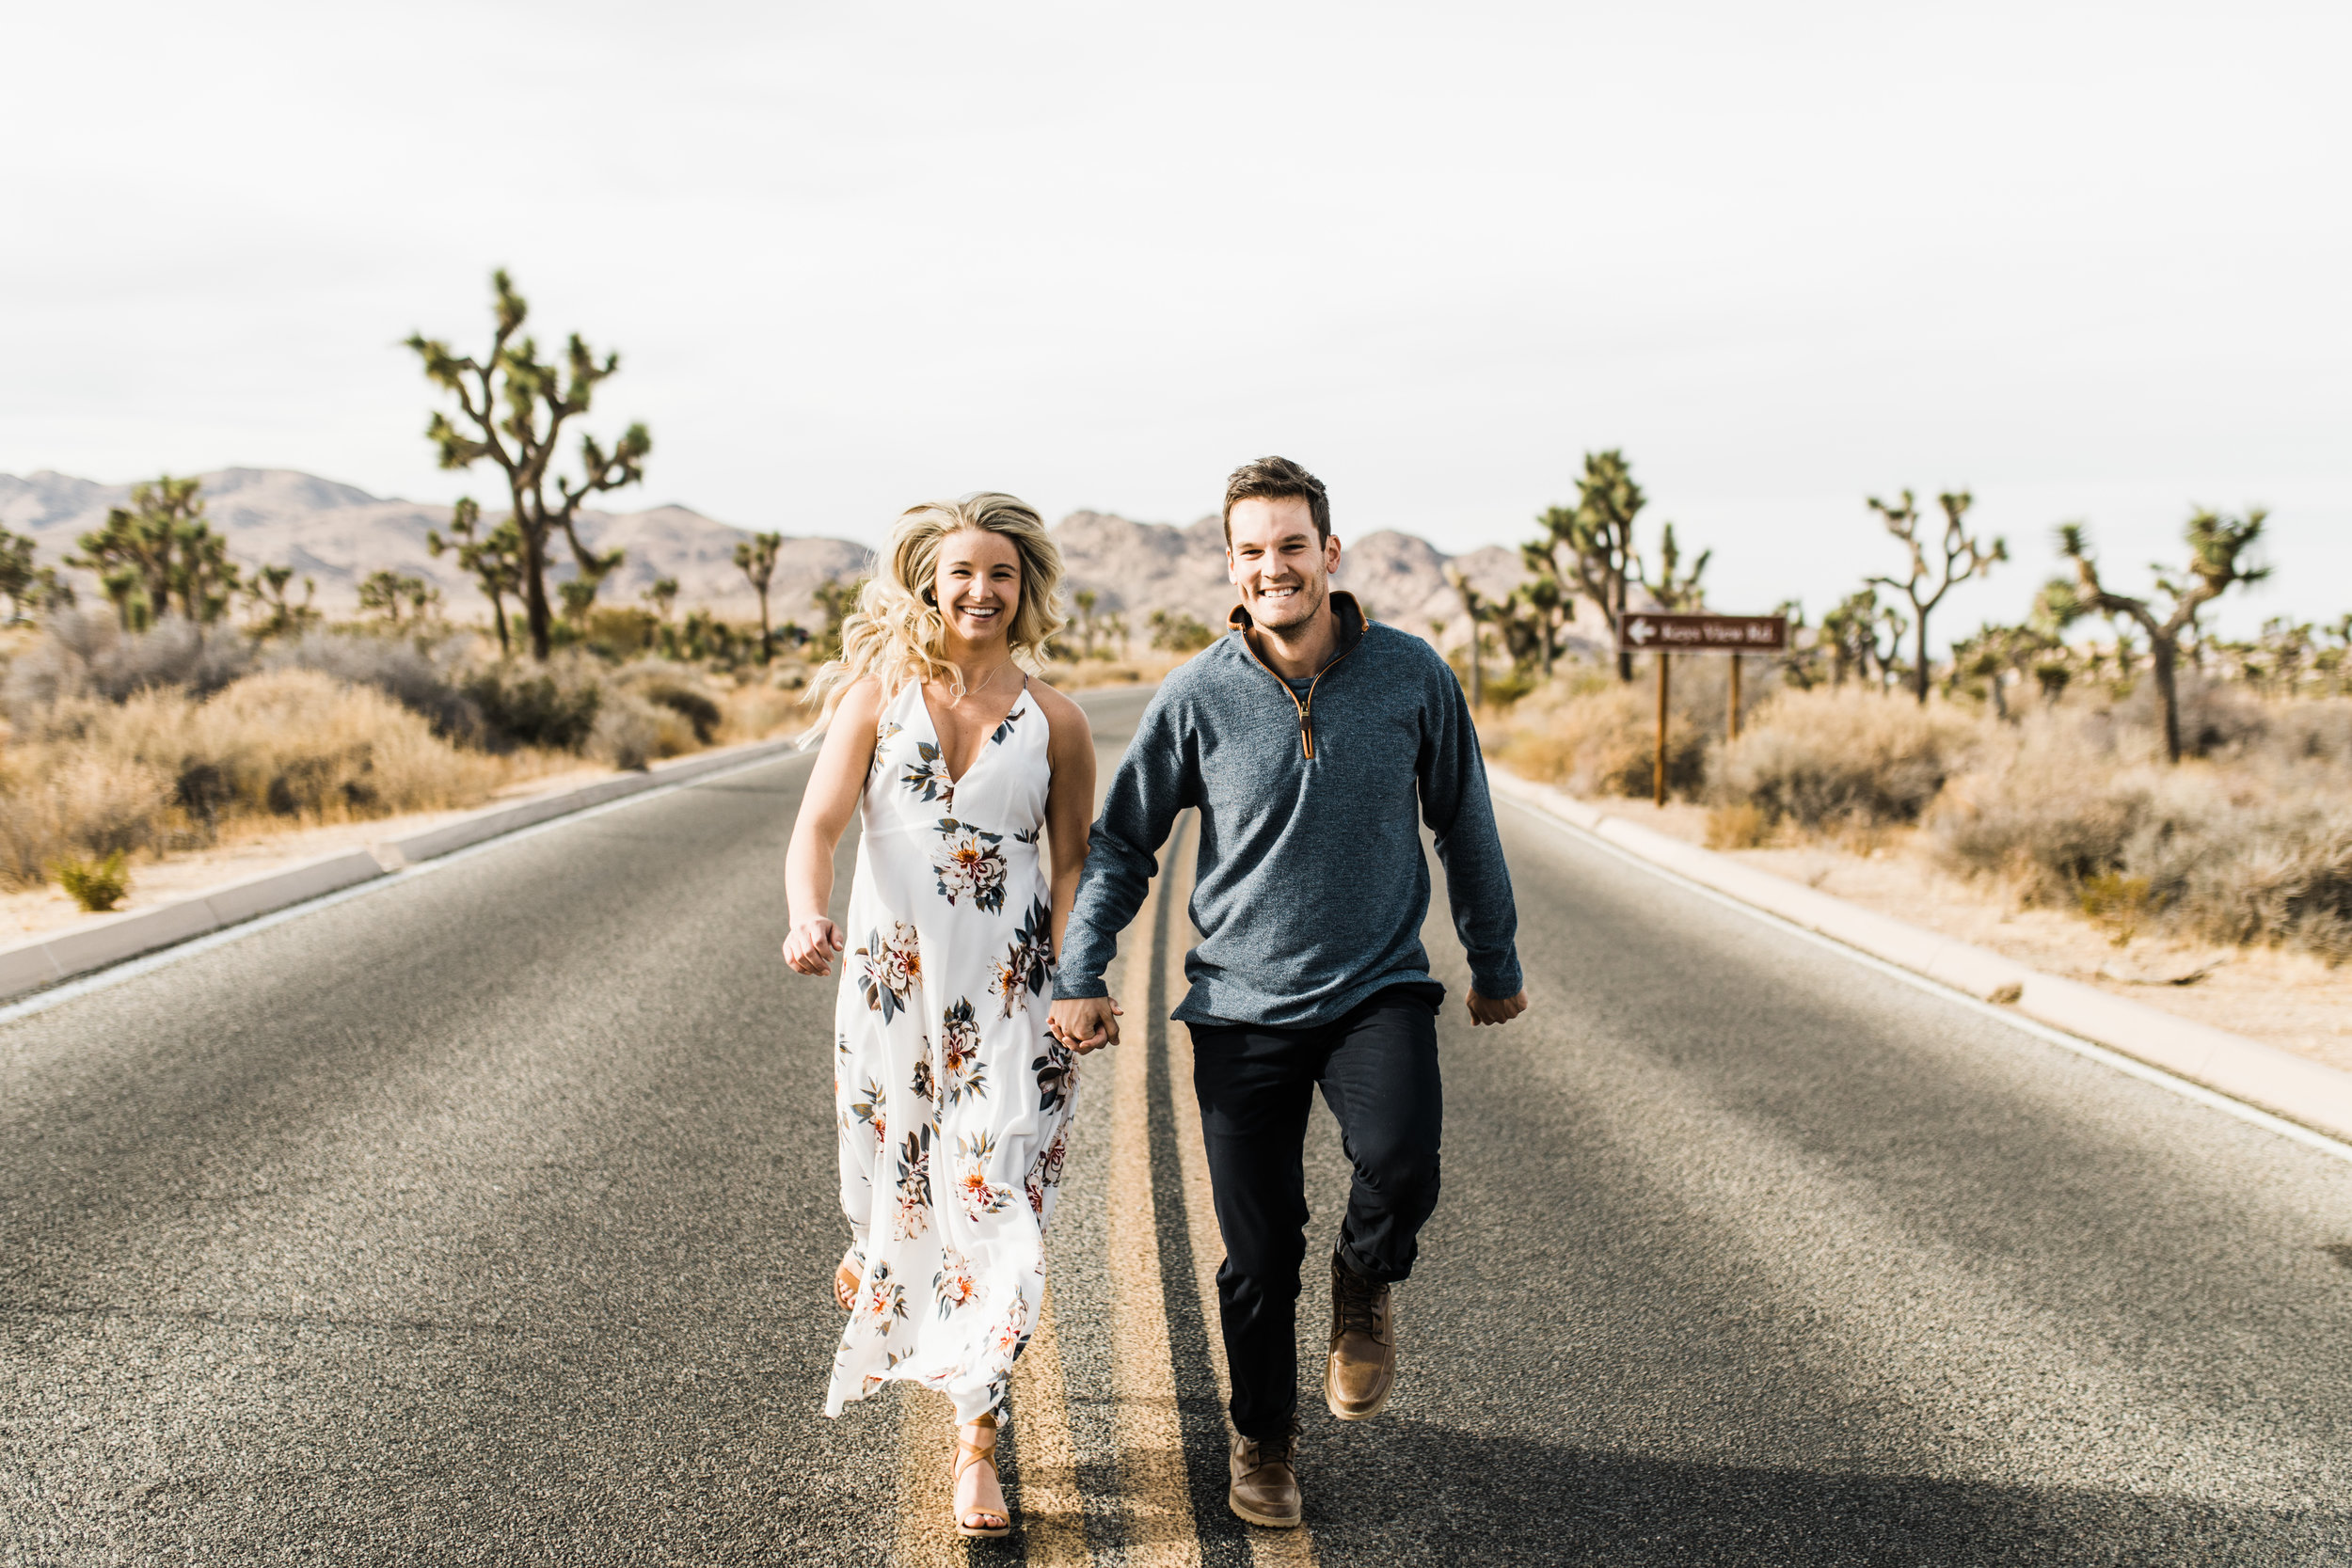 Dano&Andrew-Joshua-Tree-Engagement-Session-CRM-Media-Southern-California-Wedding-Photographer41